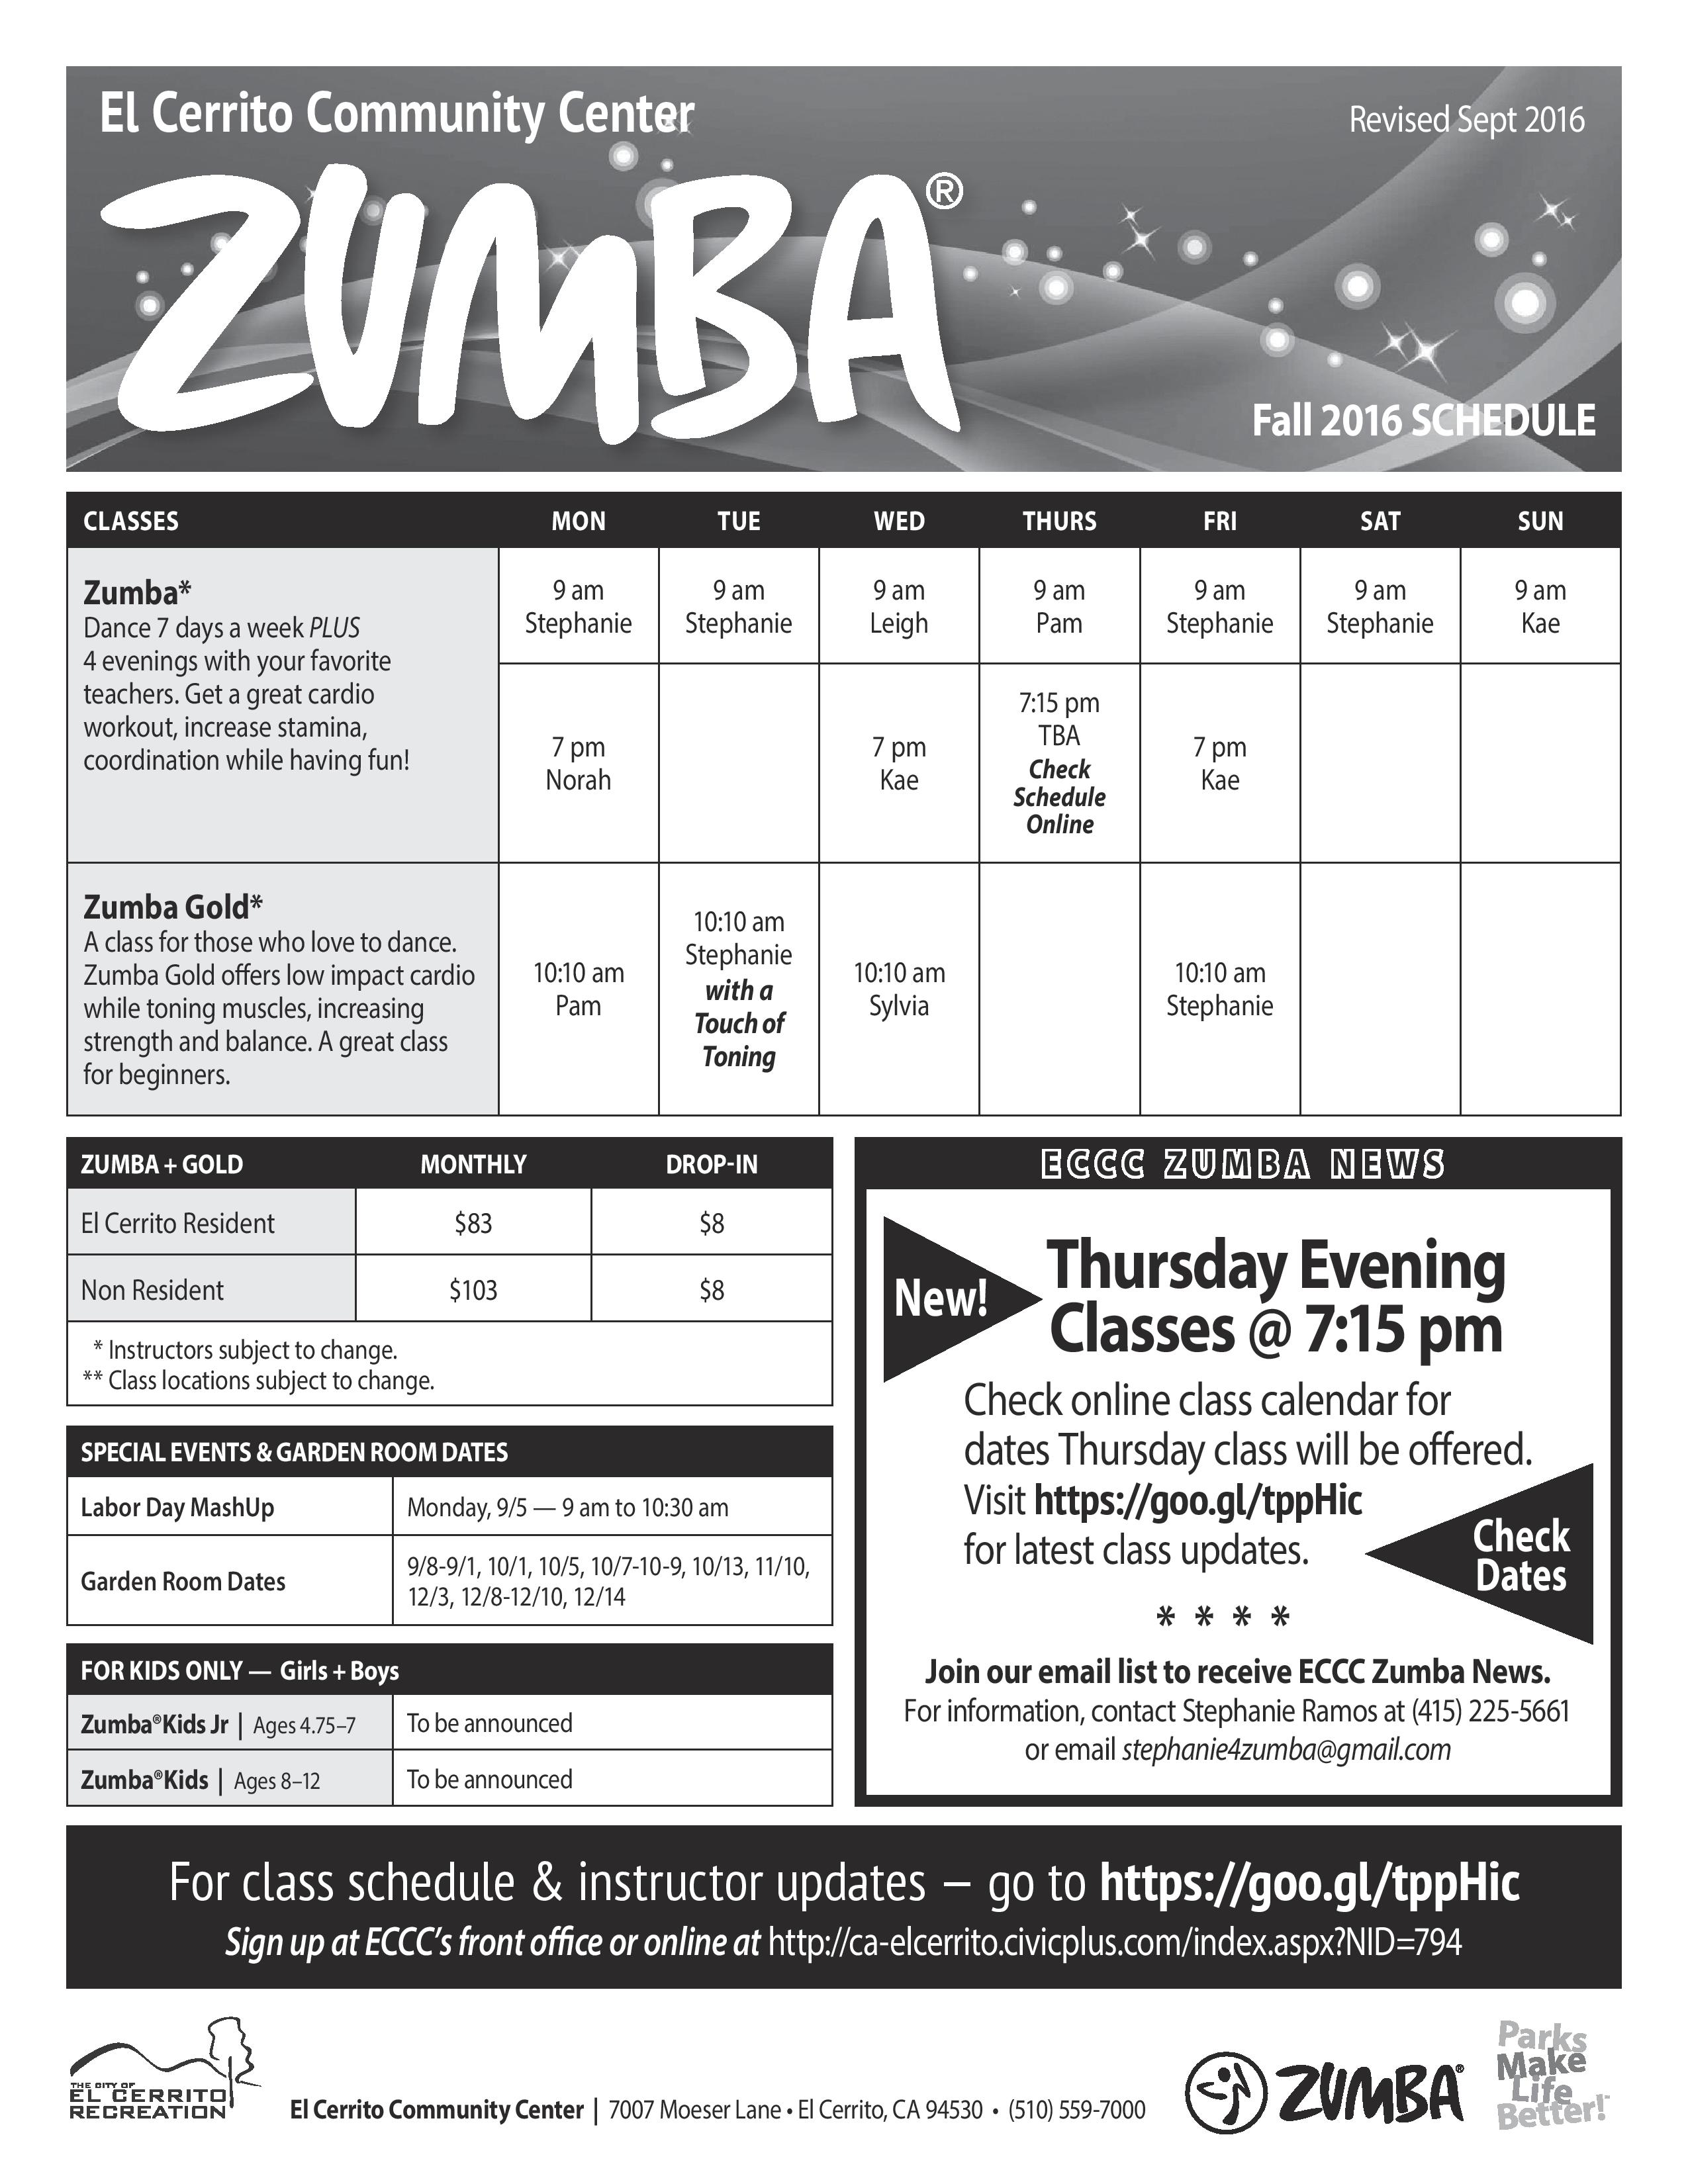 Zumba_Fall Schedule_Flyer_8.5x11_V3_ThursClassOnly-page-001.jpg